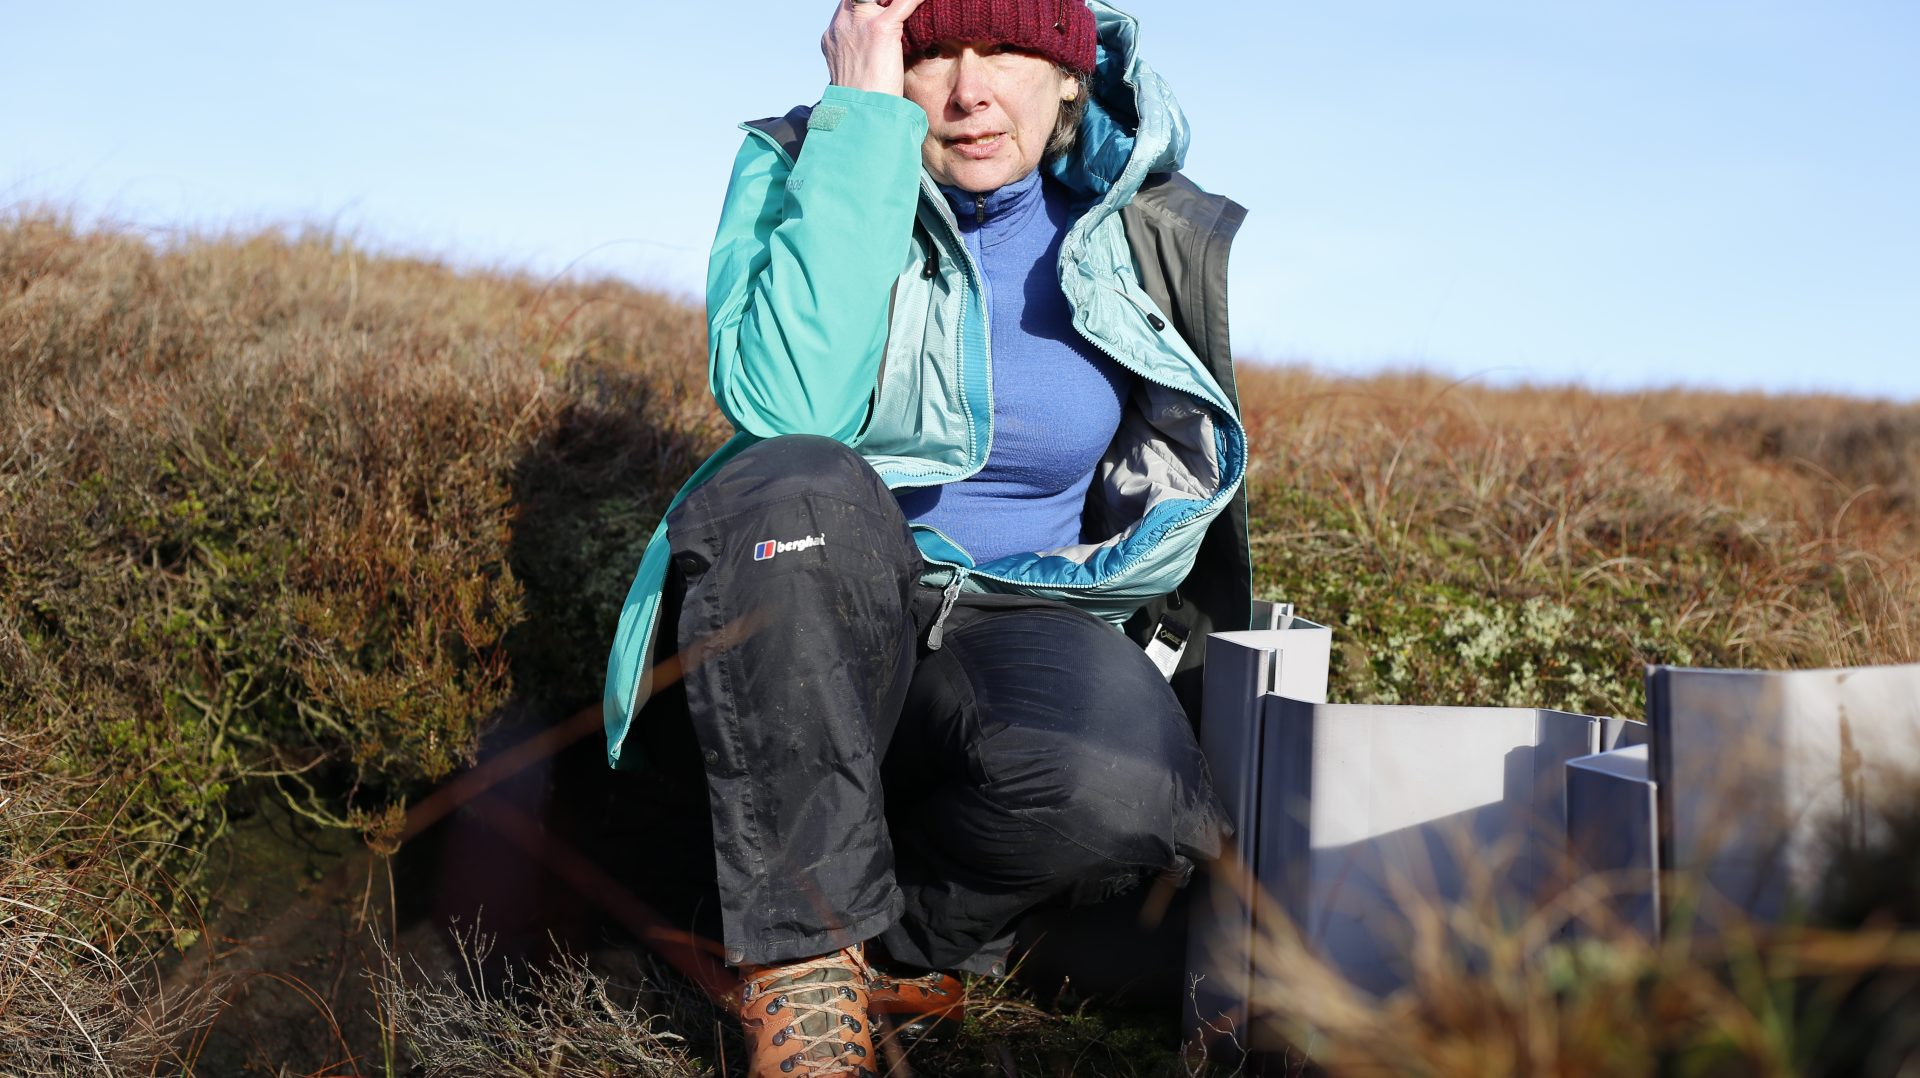 A female figure sits in the middle of the image next to a grey plastic peat gully dam. She is wearing orange walking boots, black trousers, a sky blue top, a turquoise jacket and a red woolly hat. She is surrounded by brown, green and orange vegetation. The sky is blue in the distant horizon.